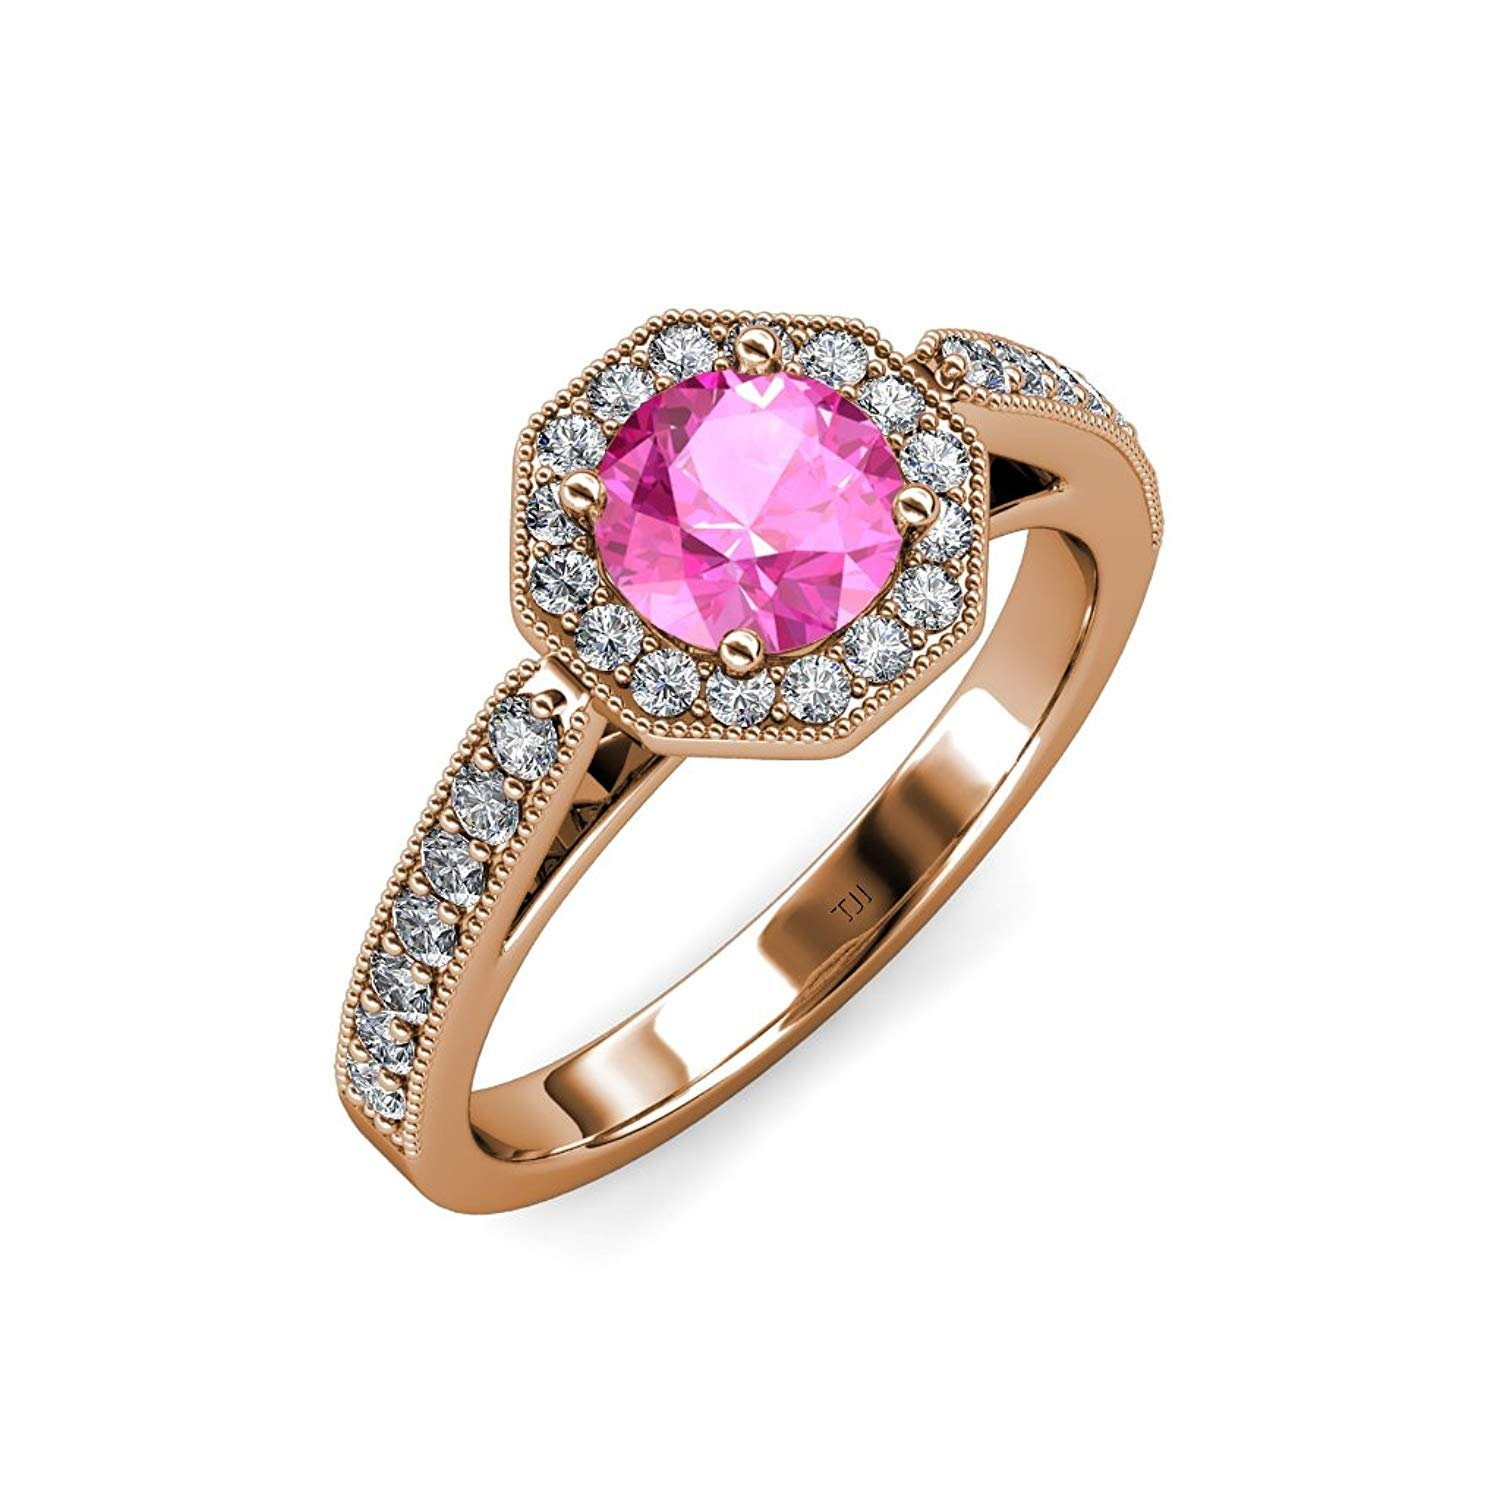 Pink Sapphire and Diamond Halo Engagement Ring with Milgrain Work 1.05 ct tw in 14K Rose Gold.size 7.5 by TriJewels